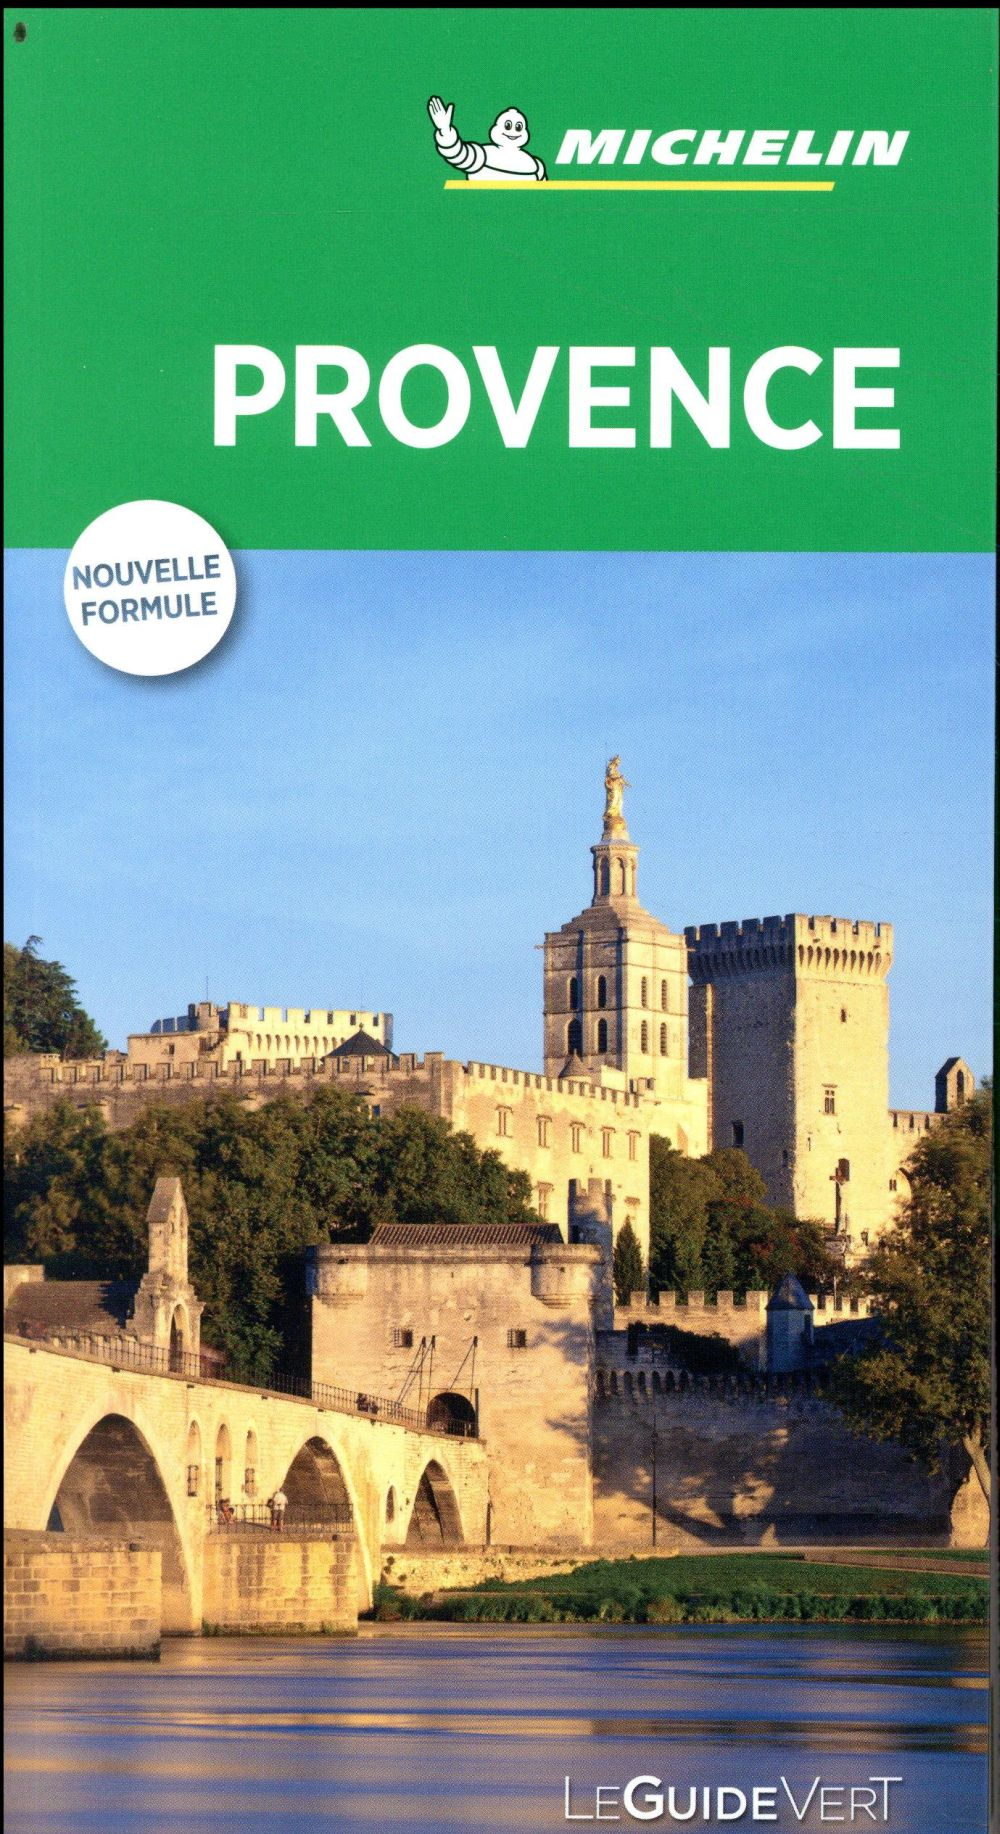 LE GUIDE VERT ; Provence